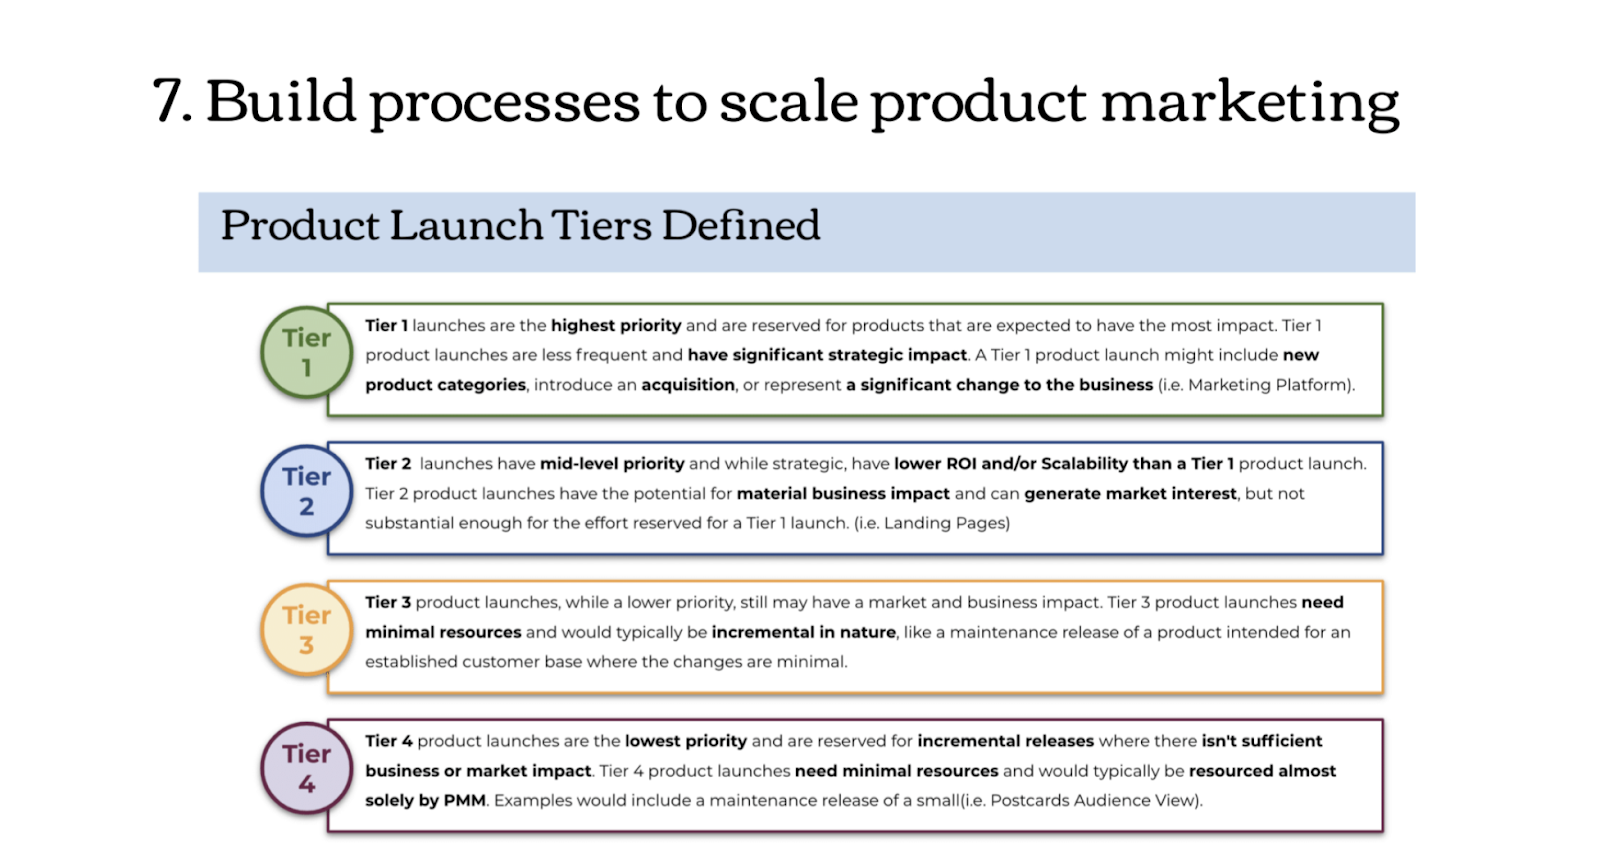 The build processes involved in scaling product marketing